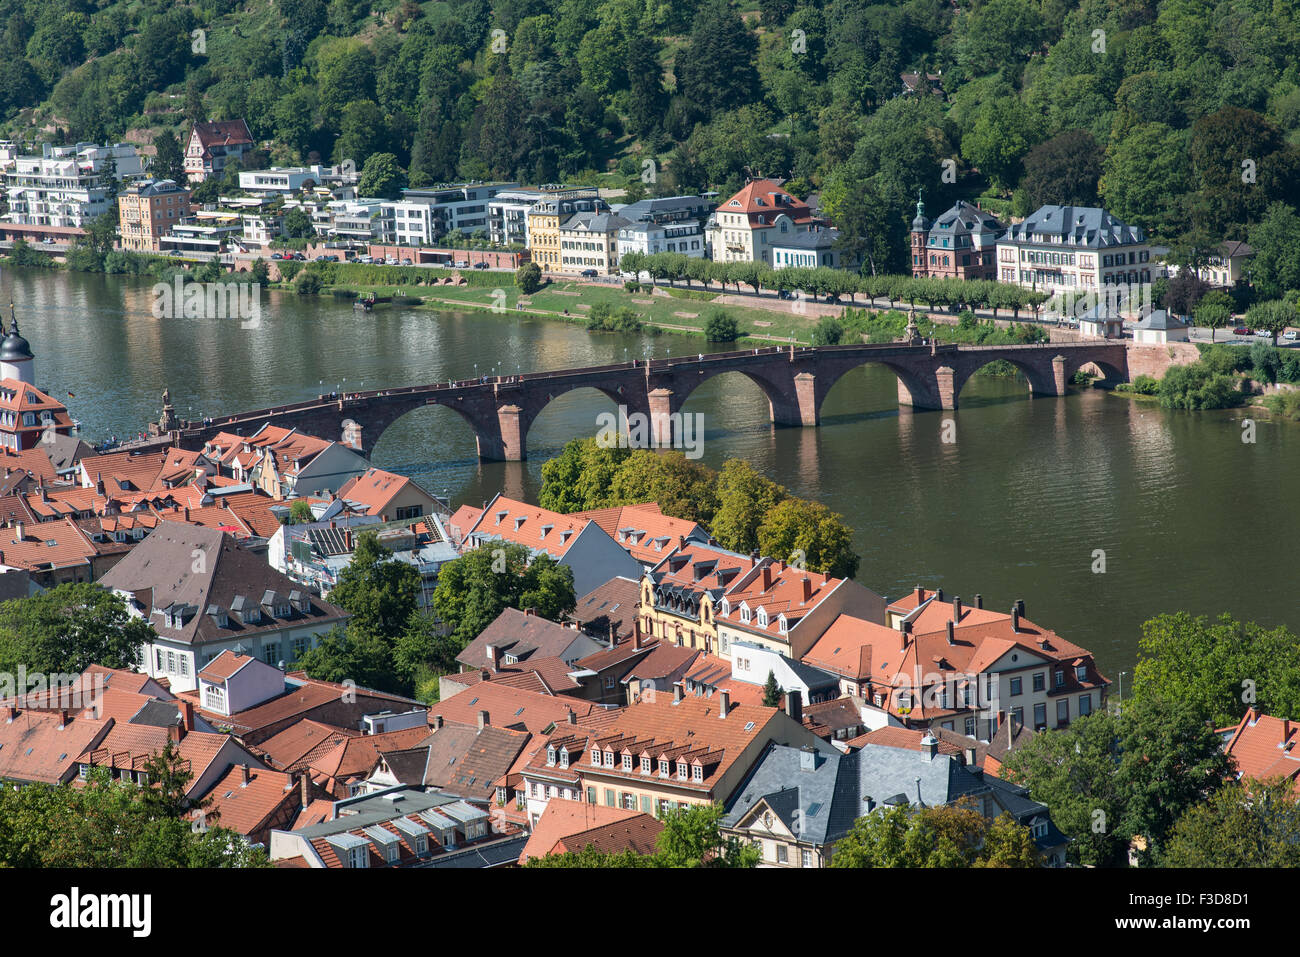 Cityscape of the historical town of Heidelberg in Germany from the castle hill with view of the Alte Bruecke, old - Stock Image